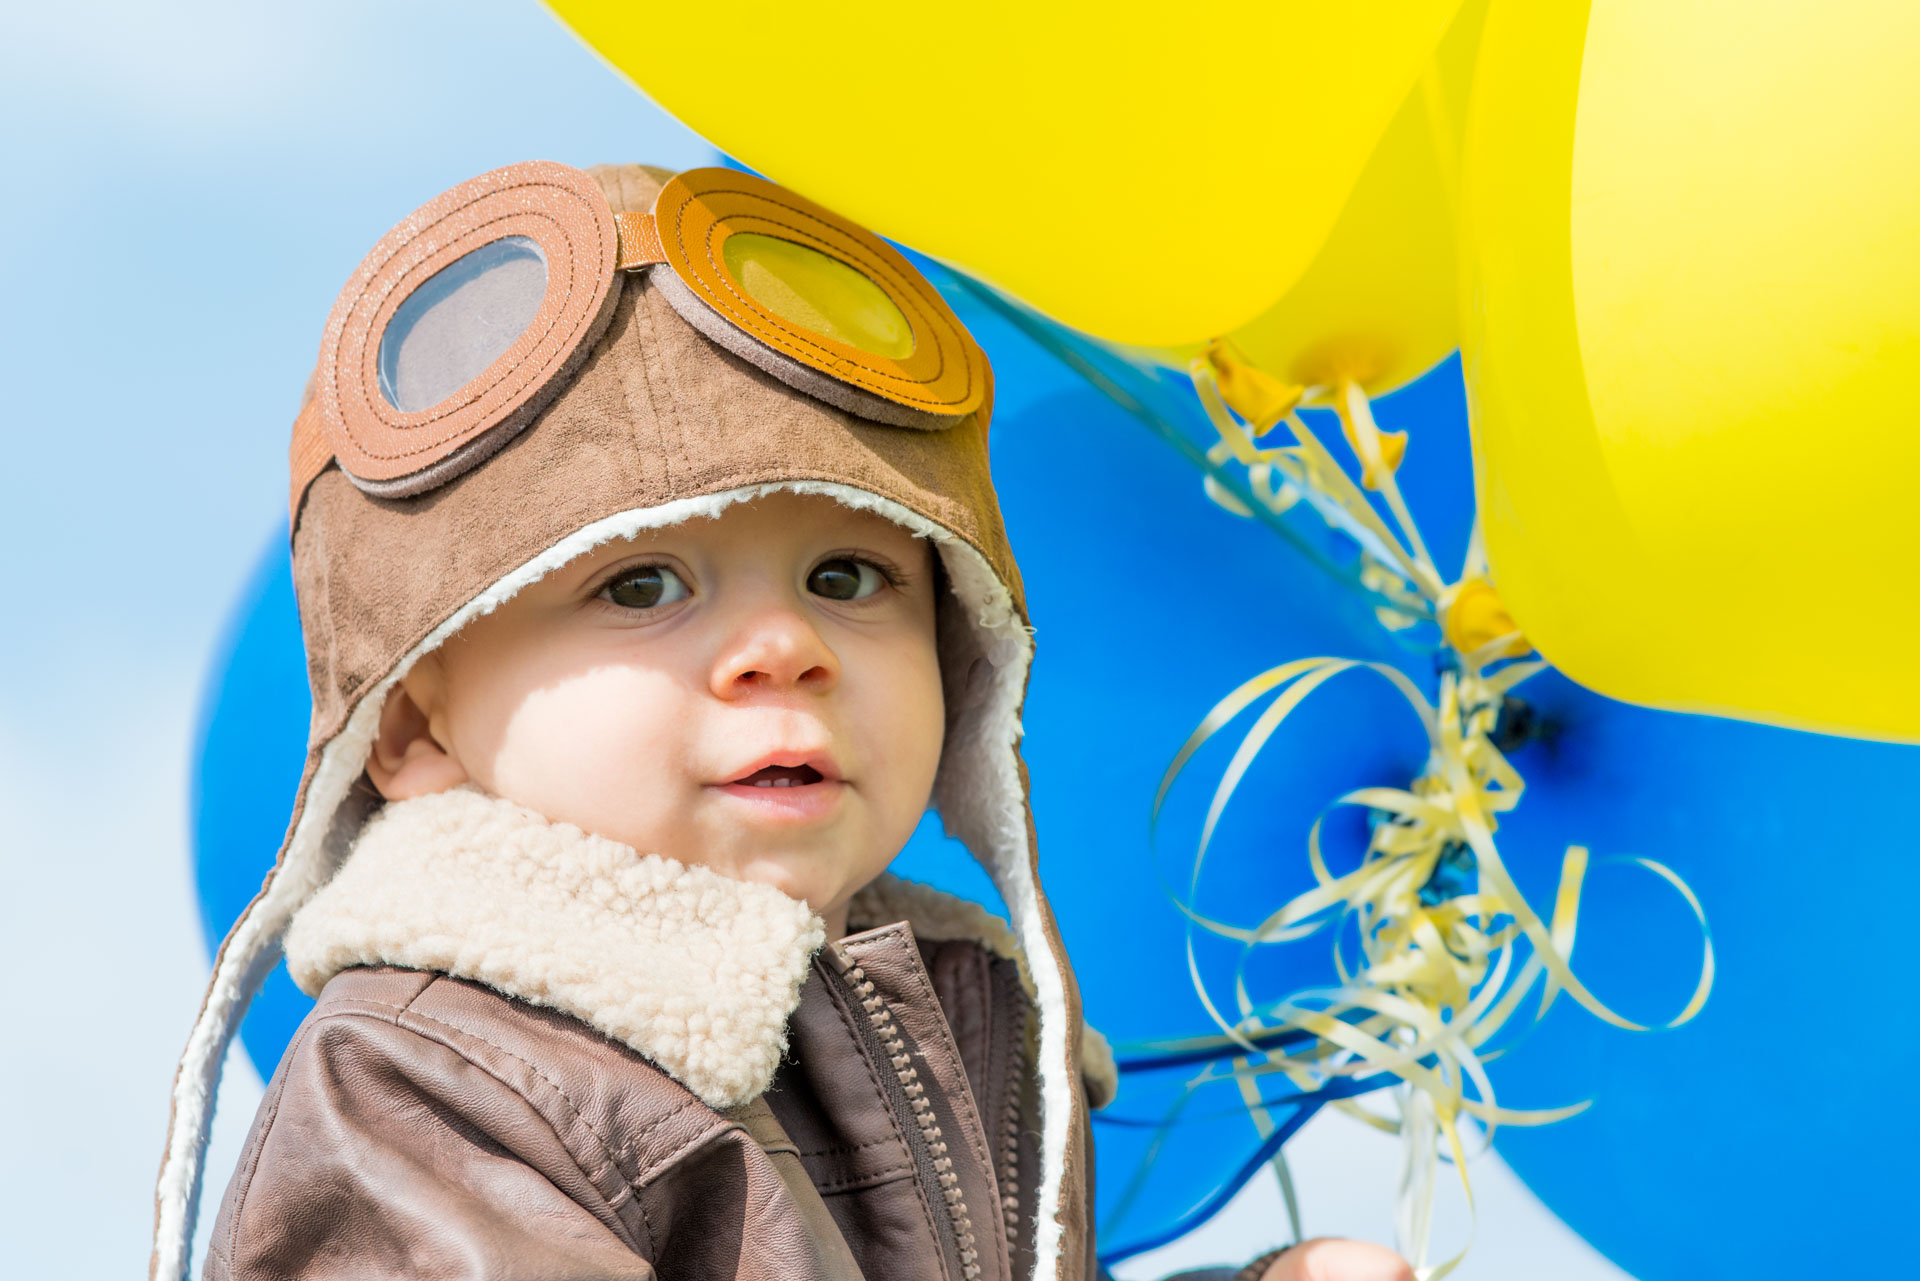 Aviator & hot air balloon birthday photography session done by Addie Lane Studios in Maple Grove, MN